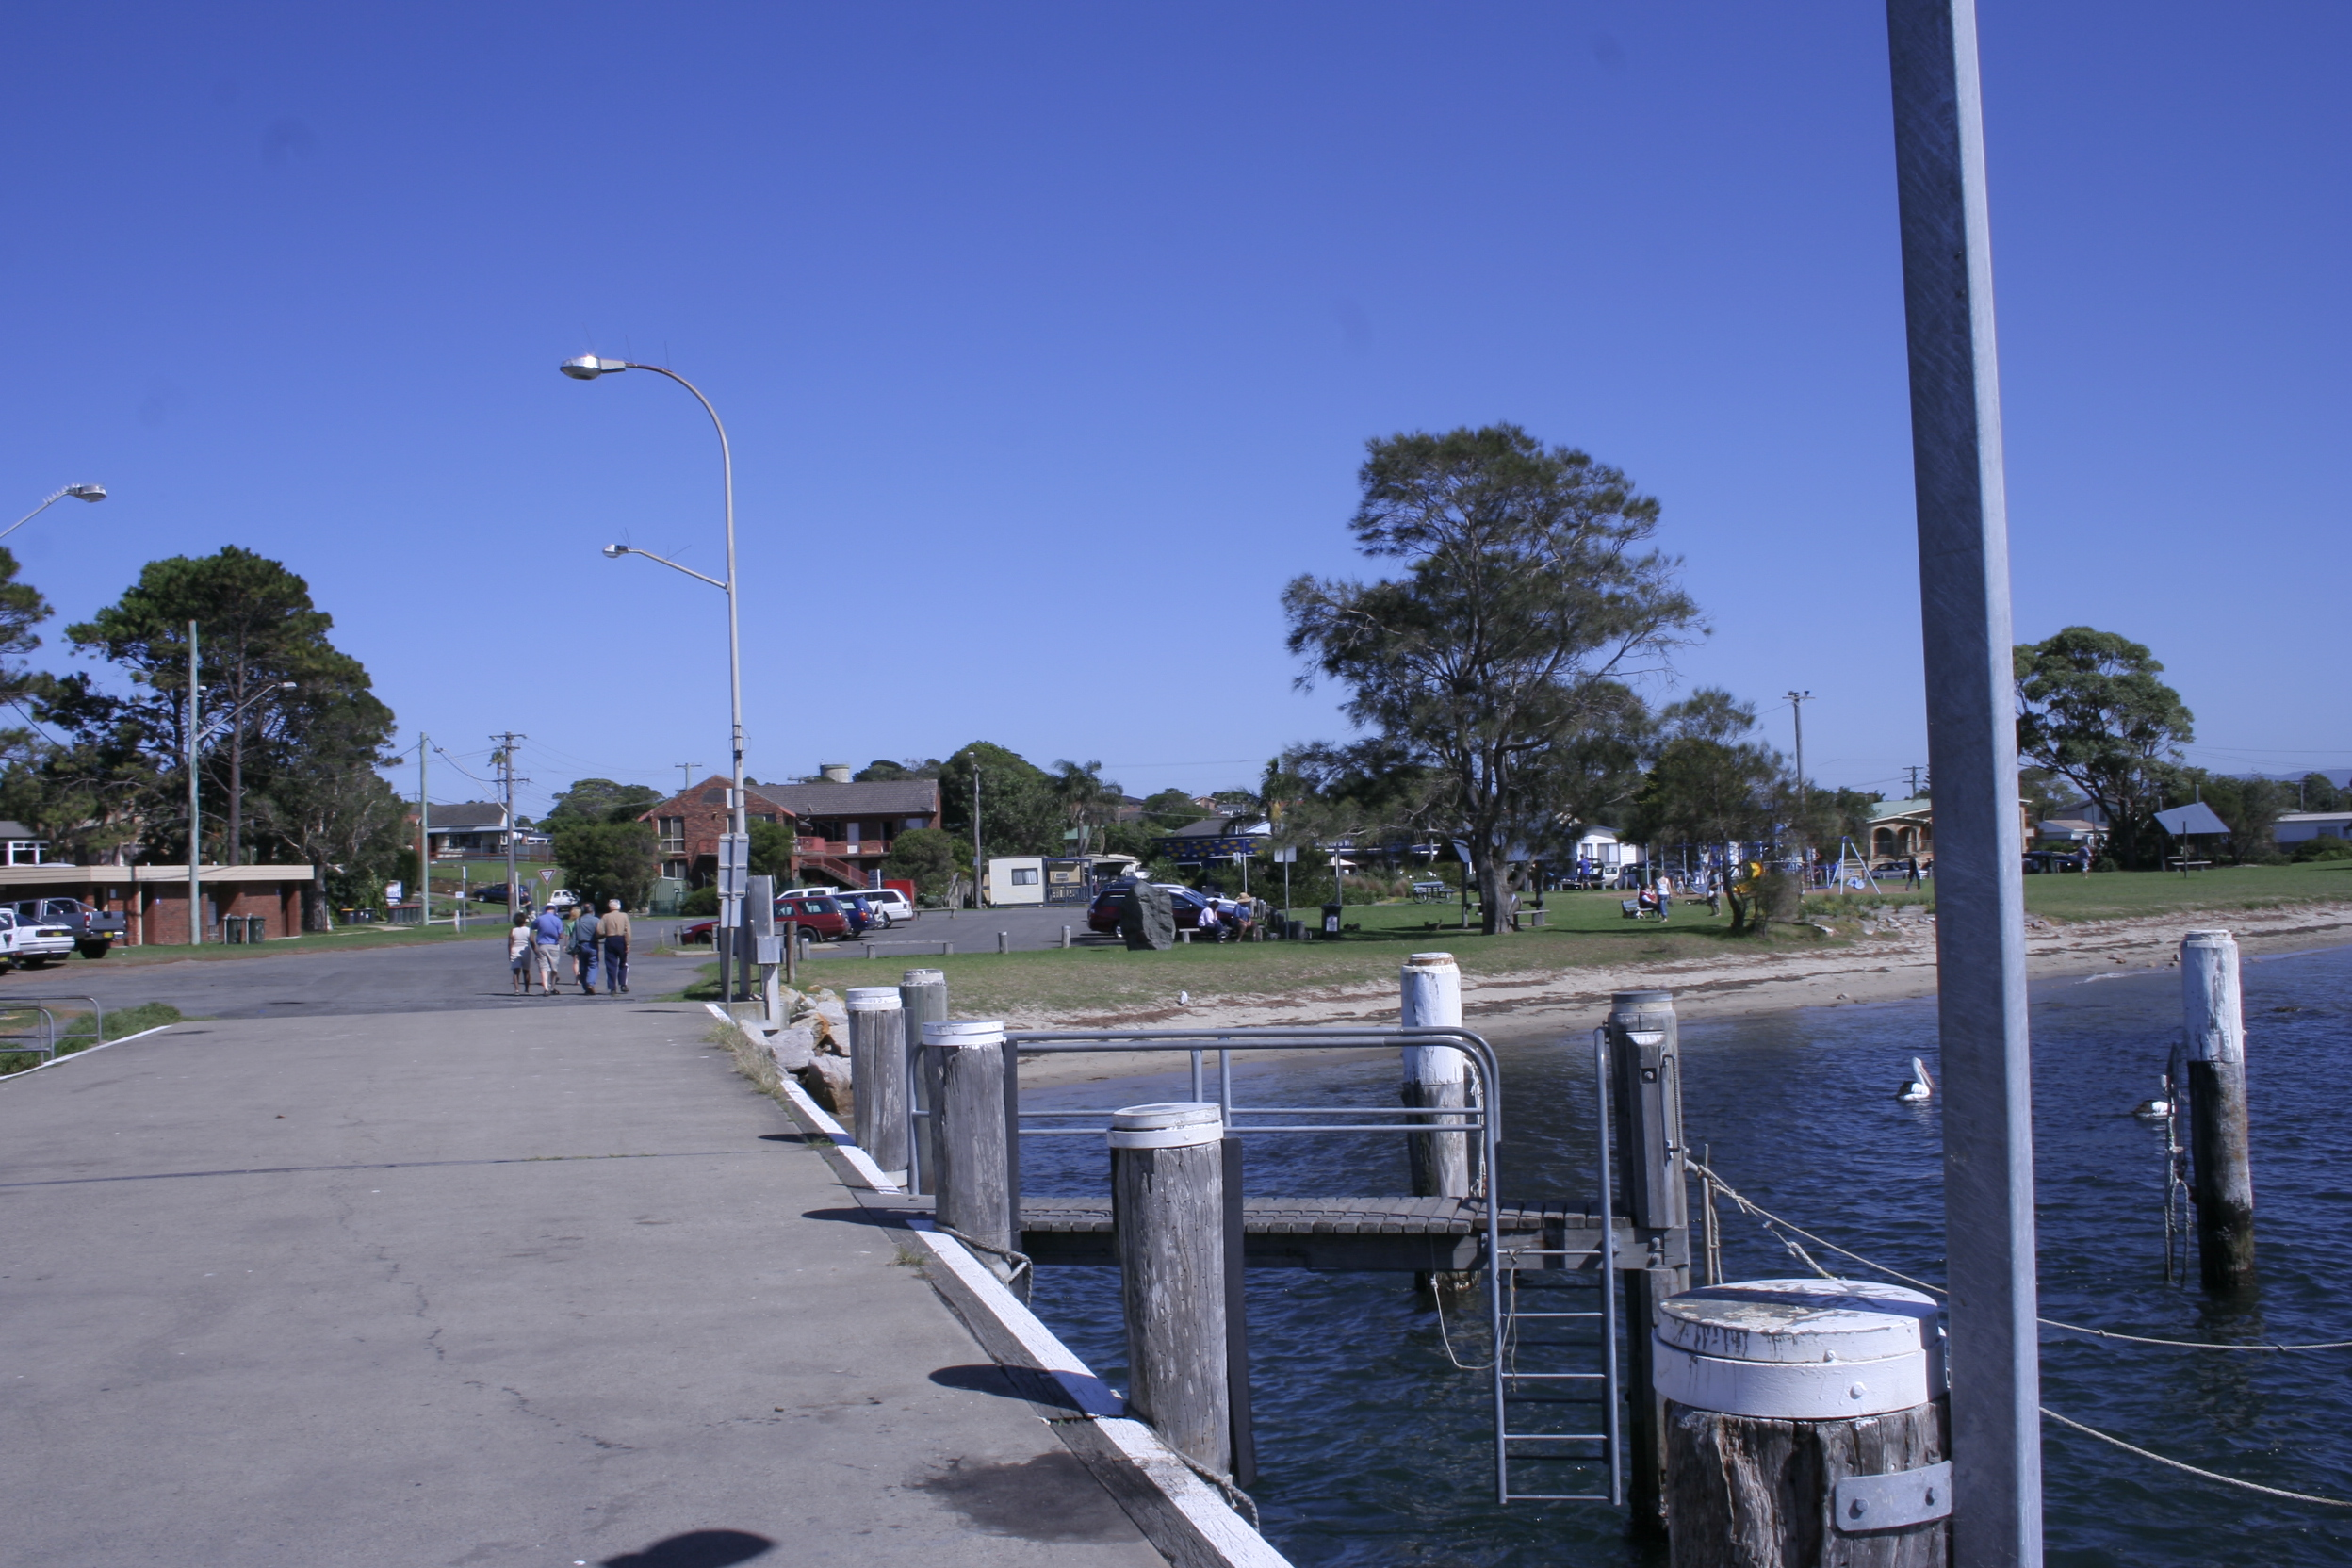 Greenwell Point Australia  City pictures : Greenwell Point 2 Bermagui, Australia